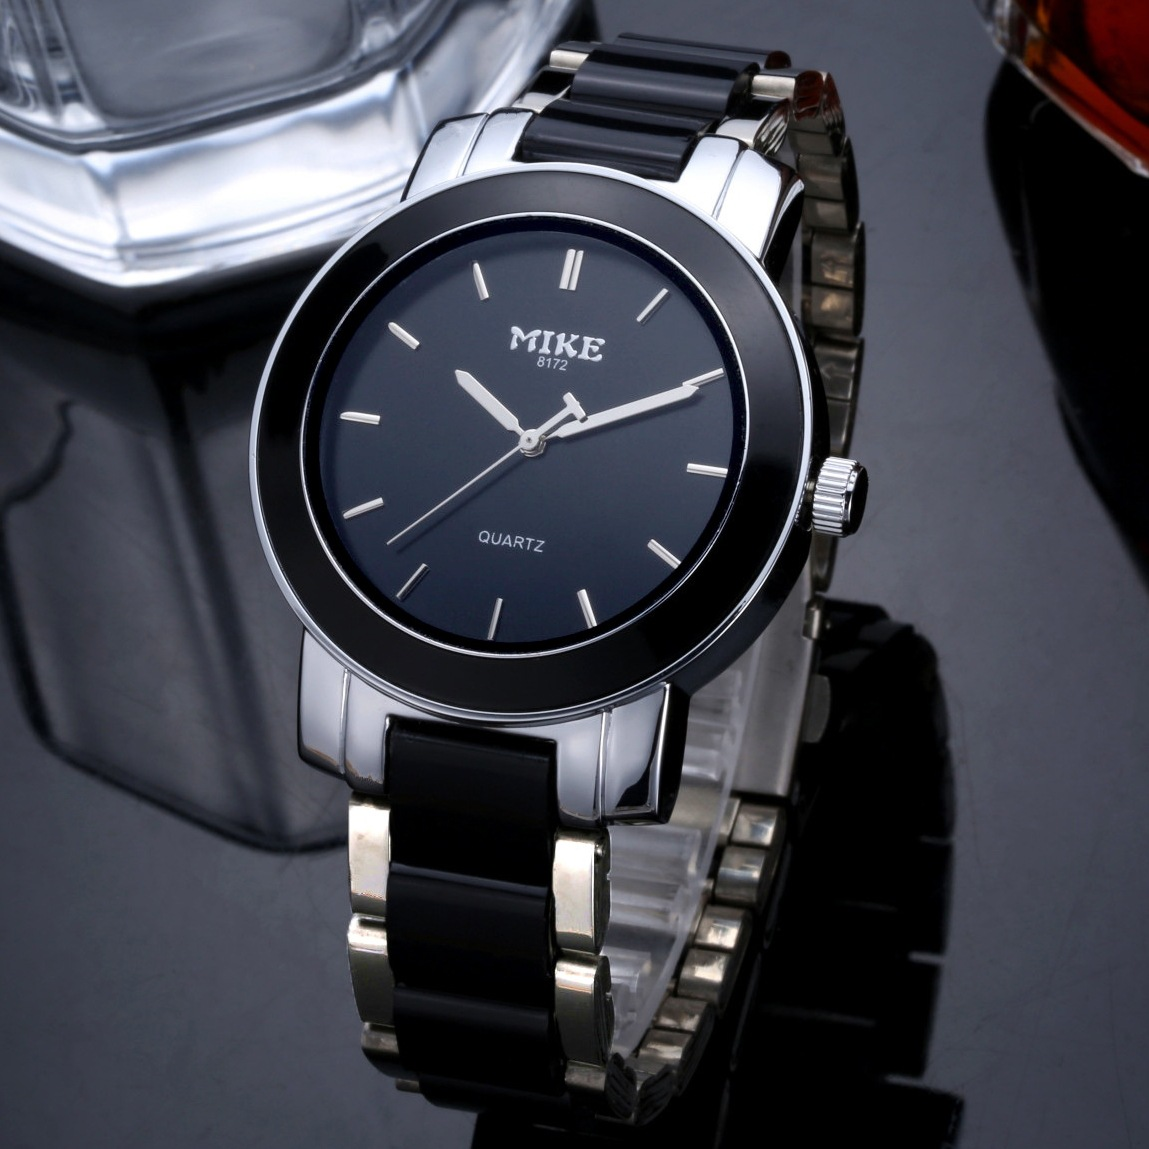 MIKE Quartz Watch Men Ceramic Watches Top Luxury Brand Watch Fashion Waterproof Clock Dress Wrist Watches Relogio Masculino